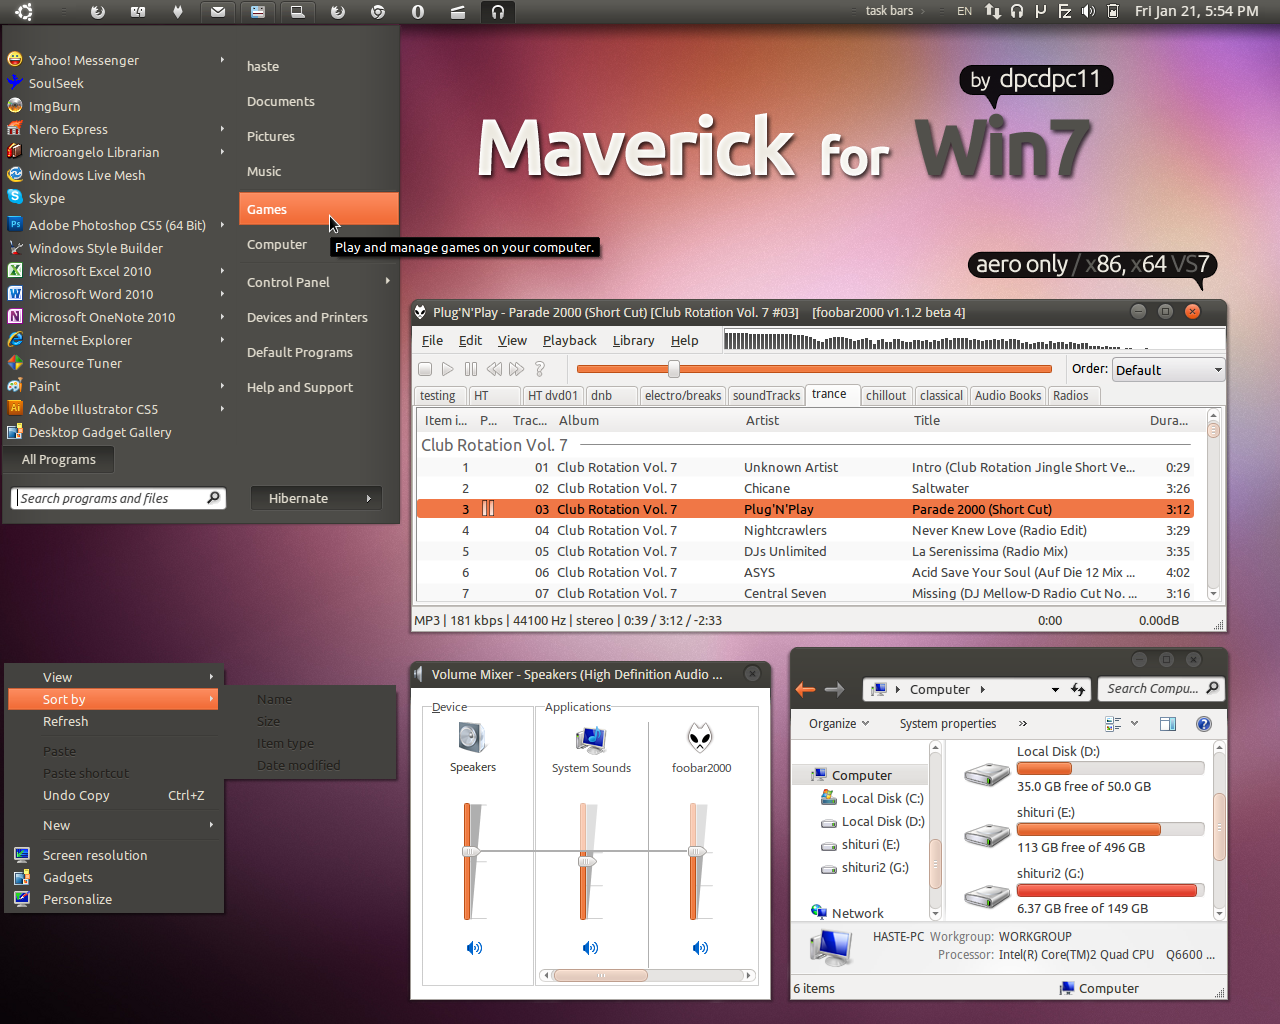 Maverick for Win7 by dpcdpc11